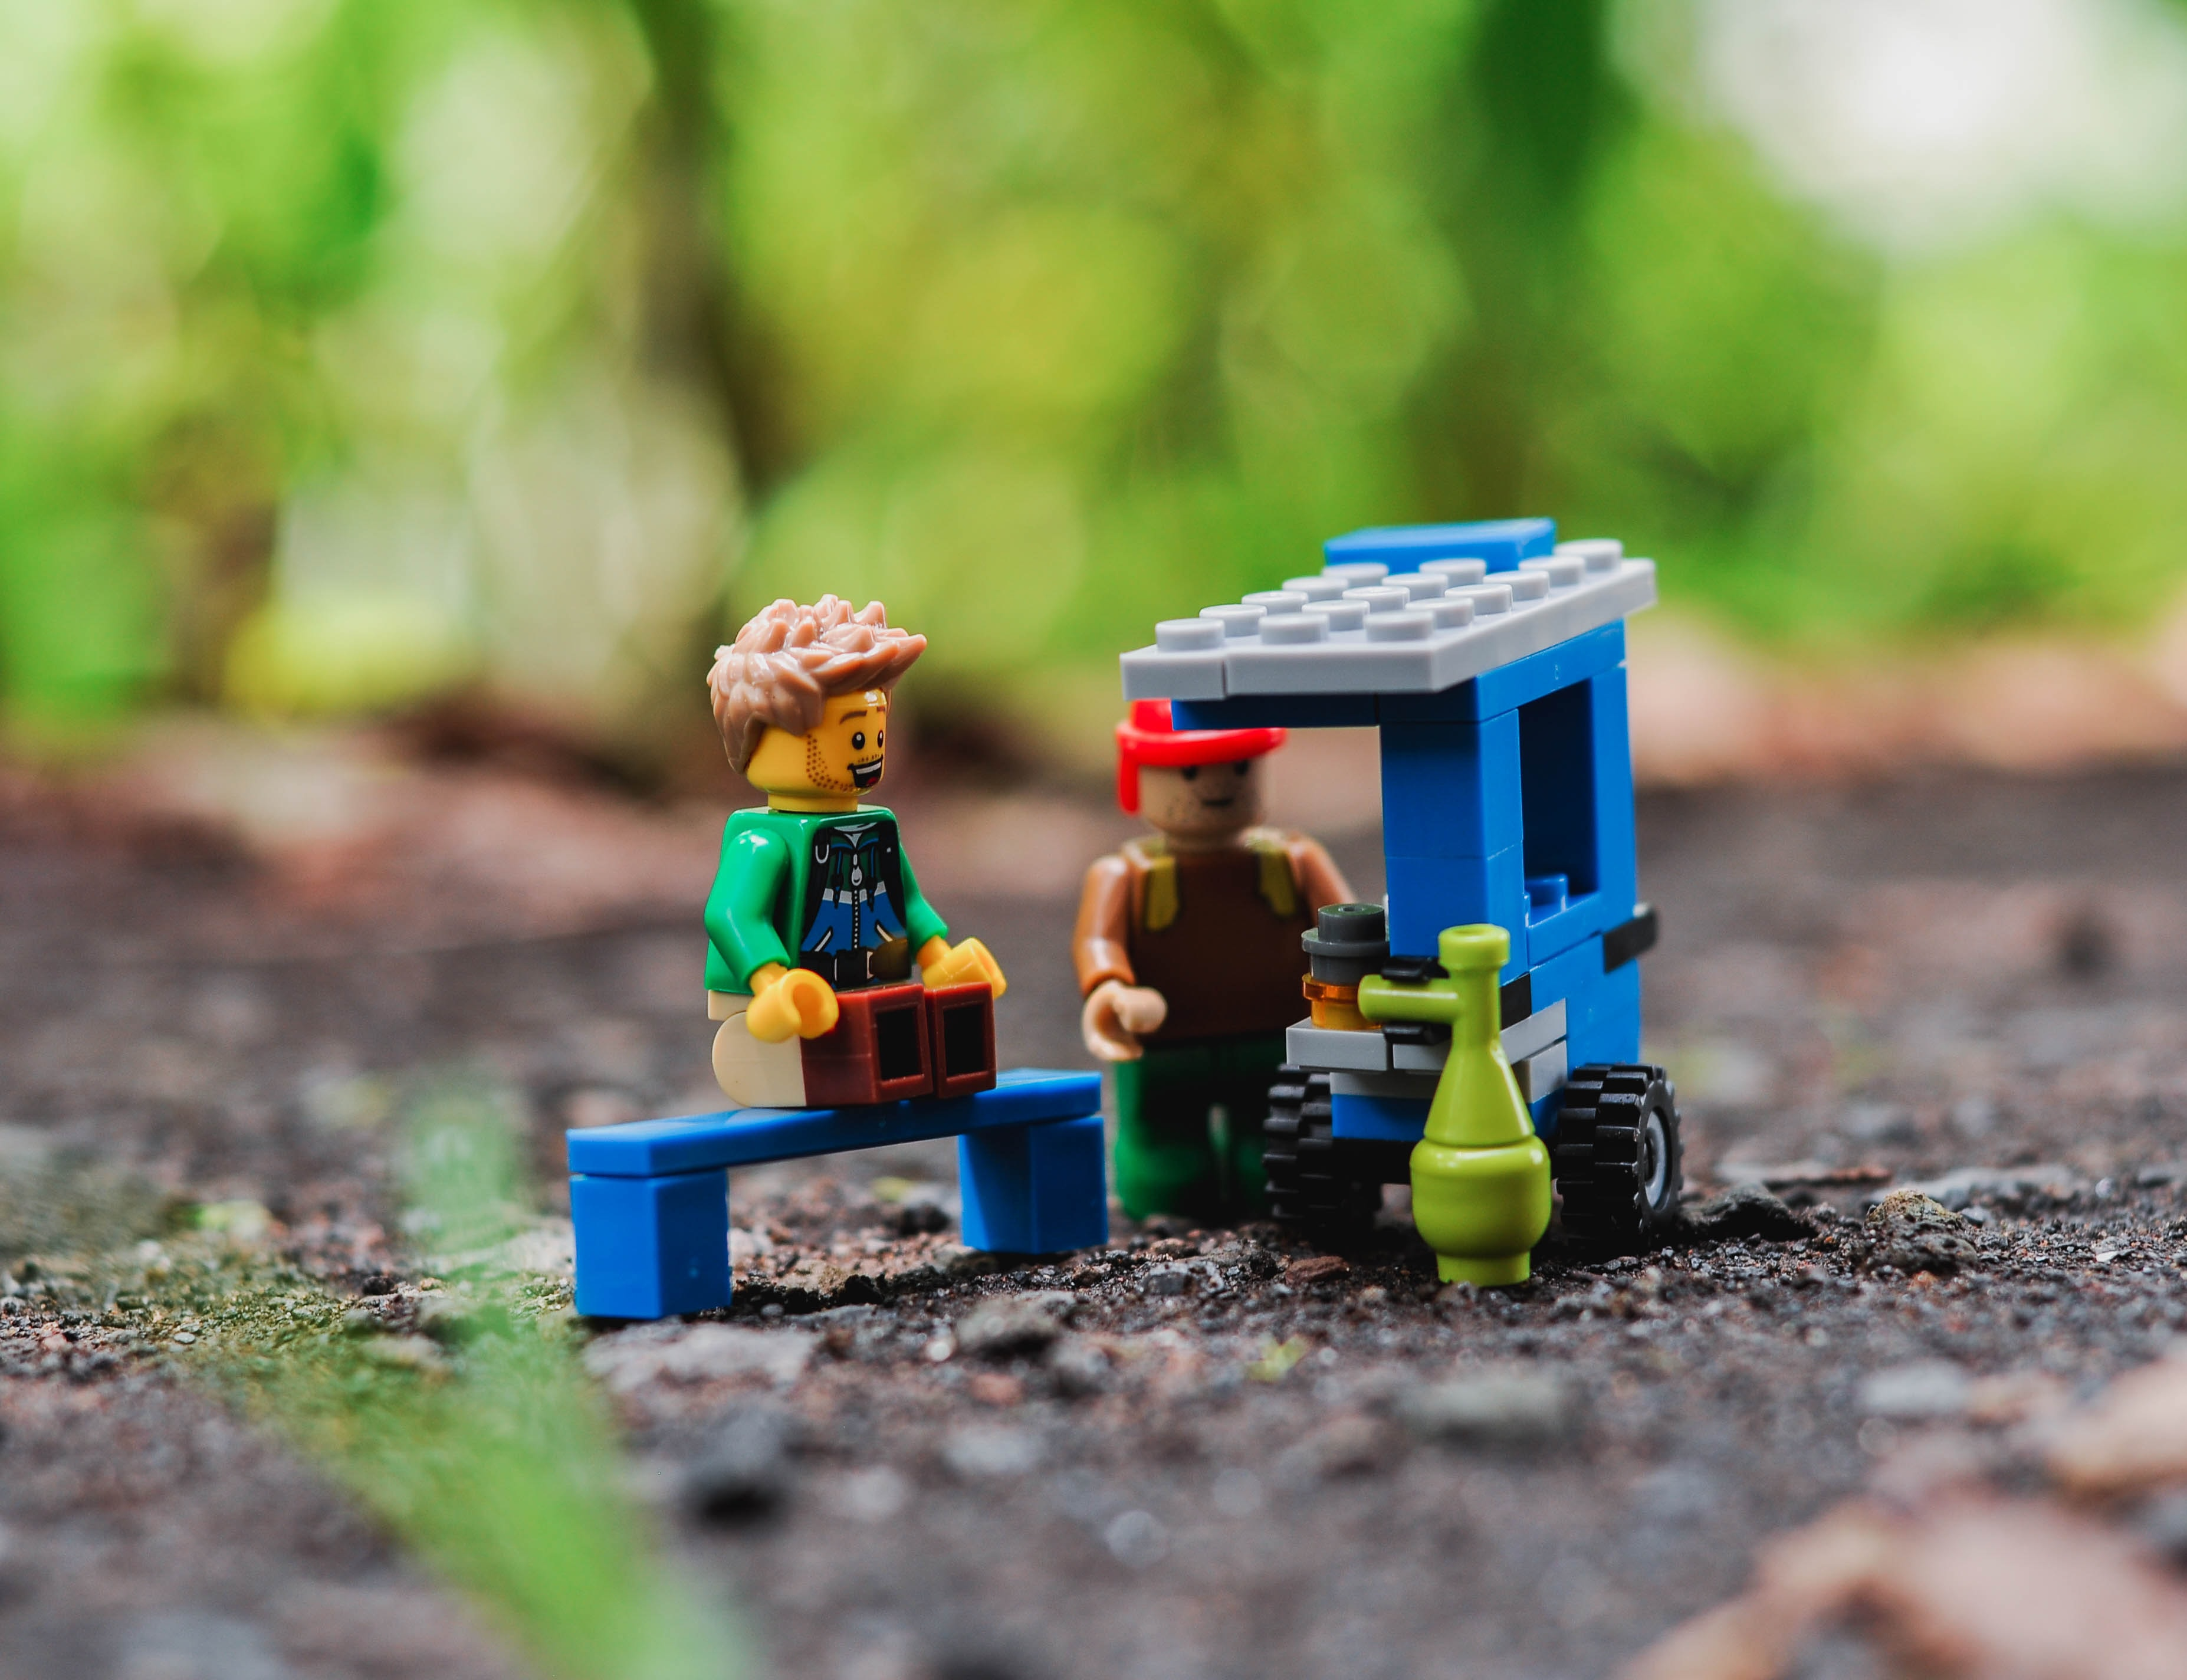 shallow focus lens photography of LEGO toys